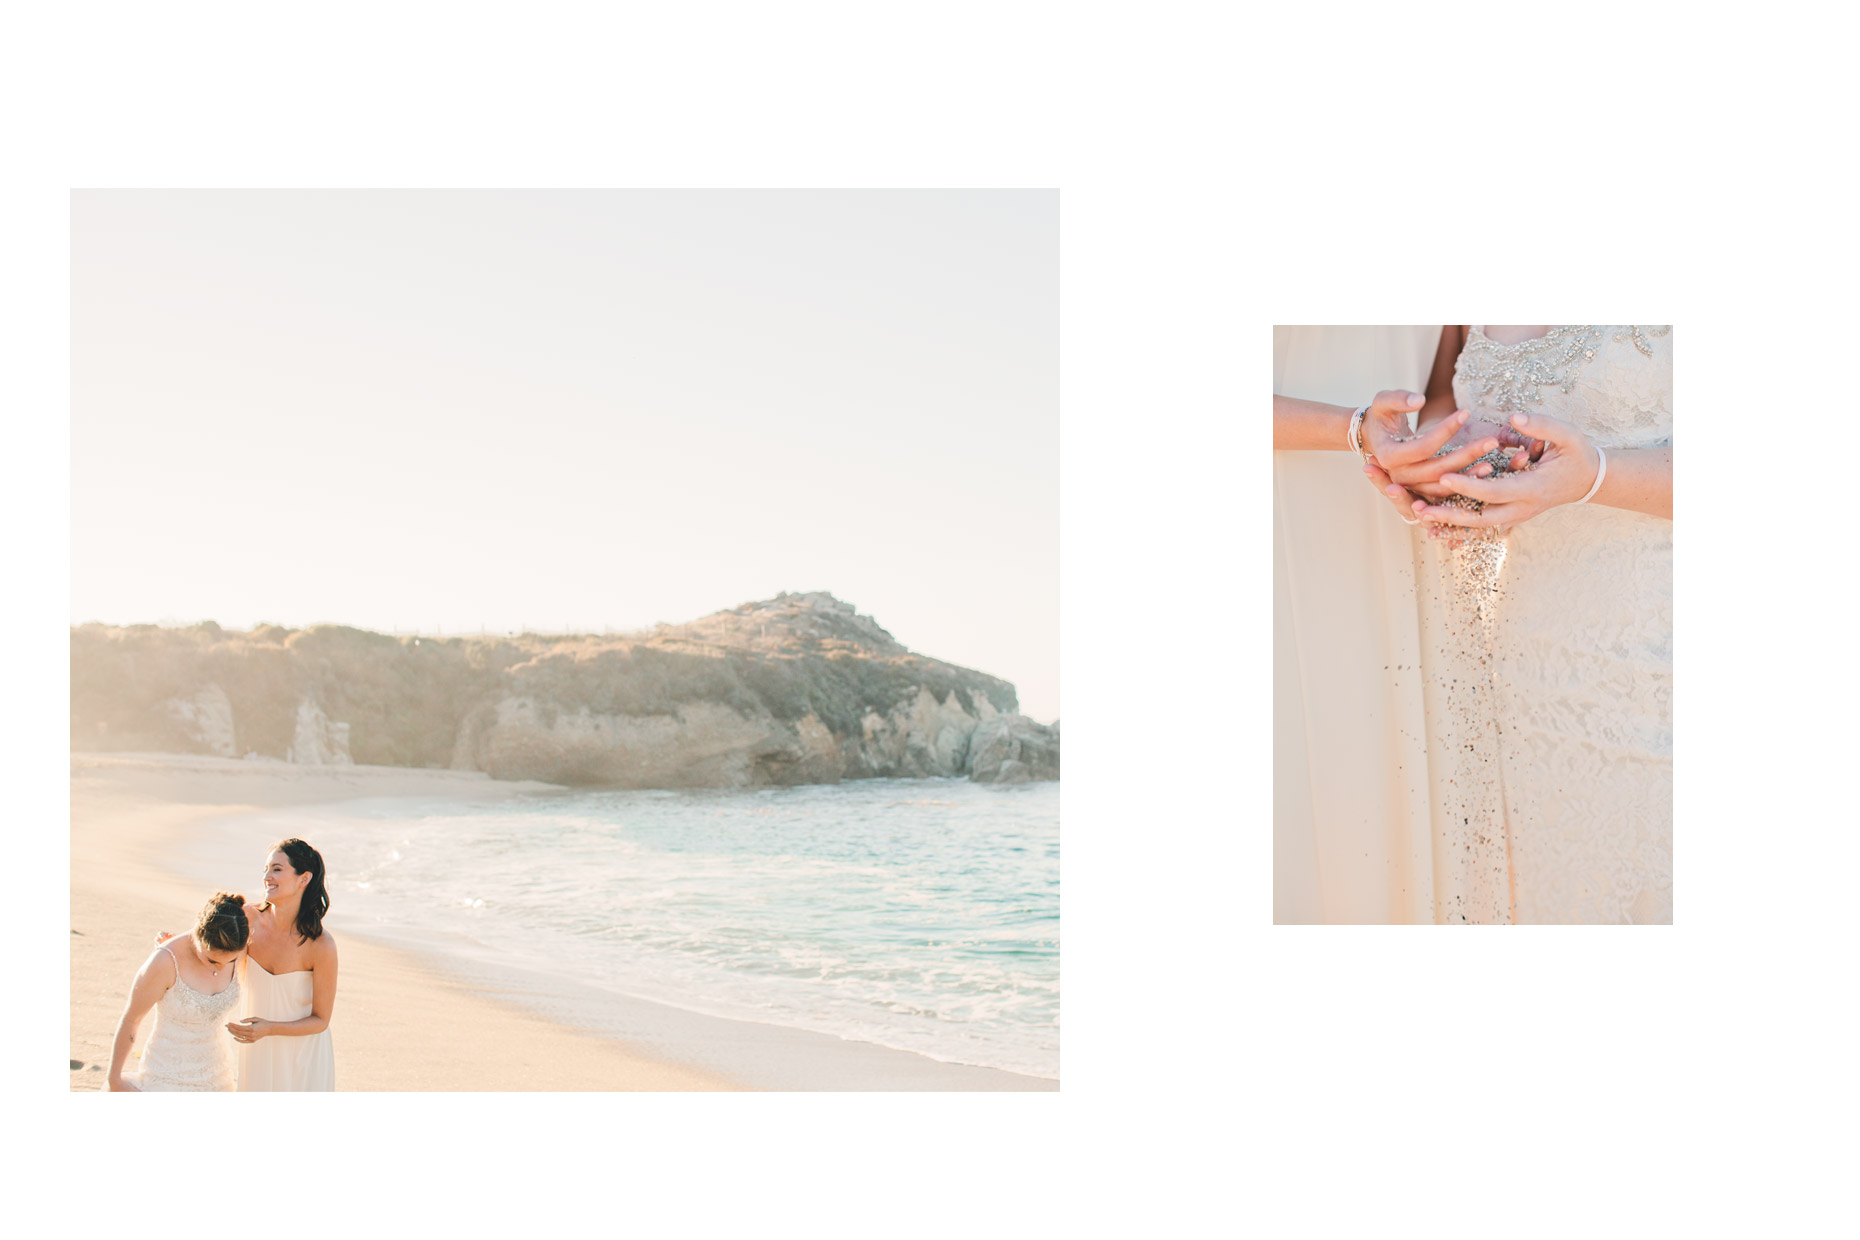 monterey-carmel-by-the-sea-wedding-photographer-nixieandco2